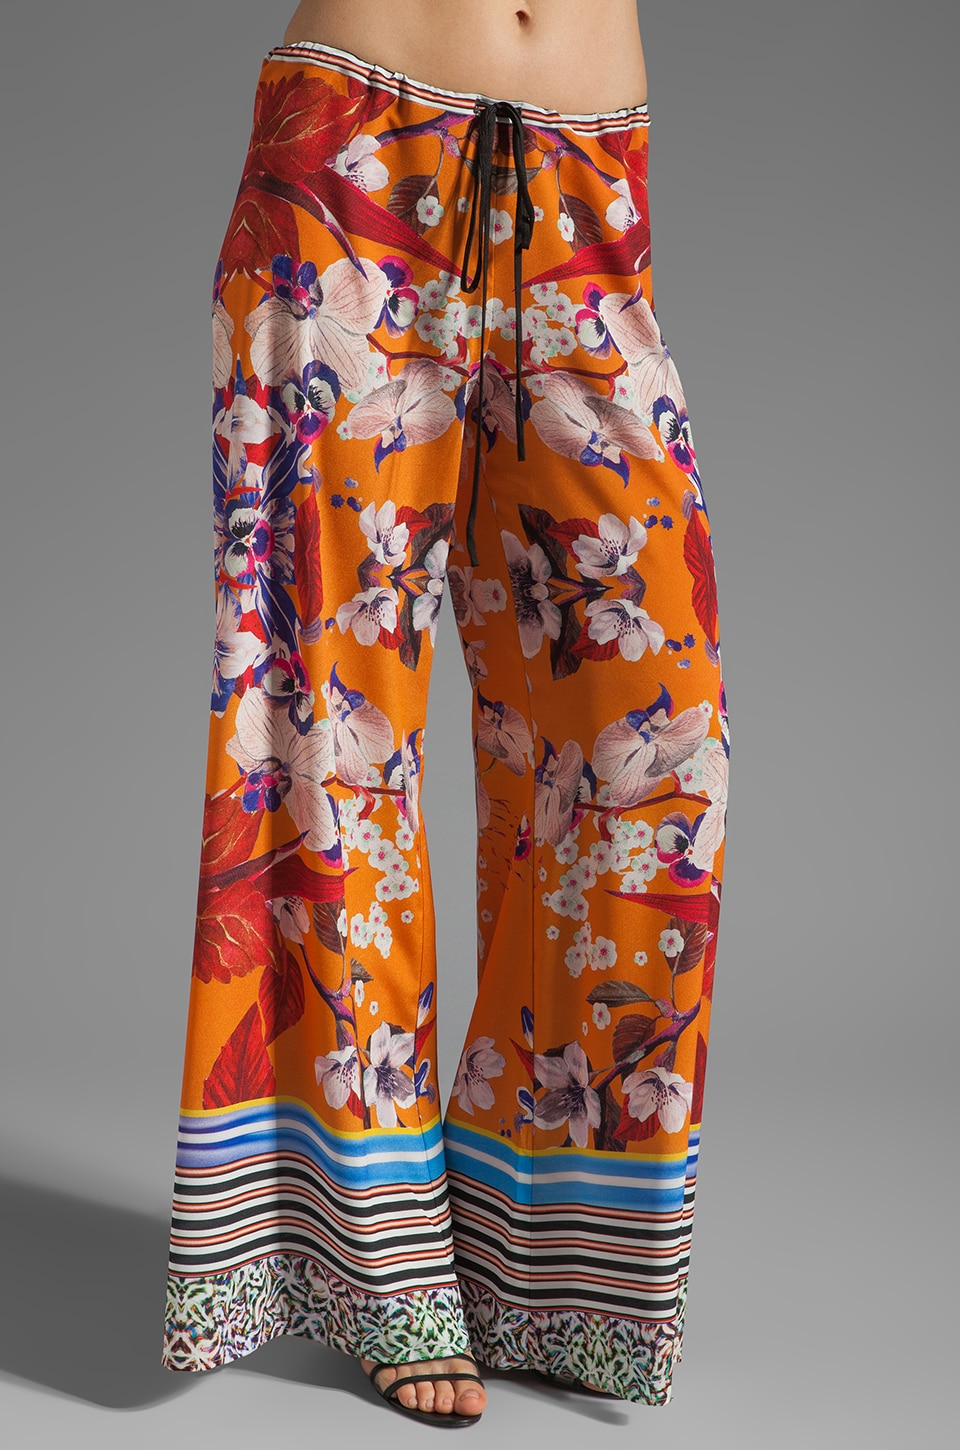 Clover Canyon Prism Orchid Pant in Orange